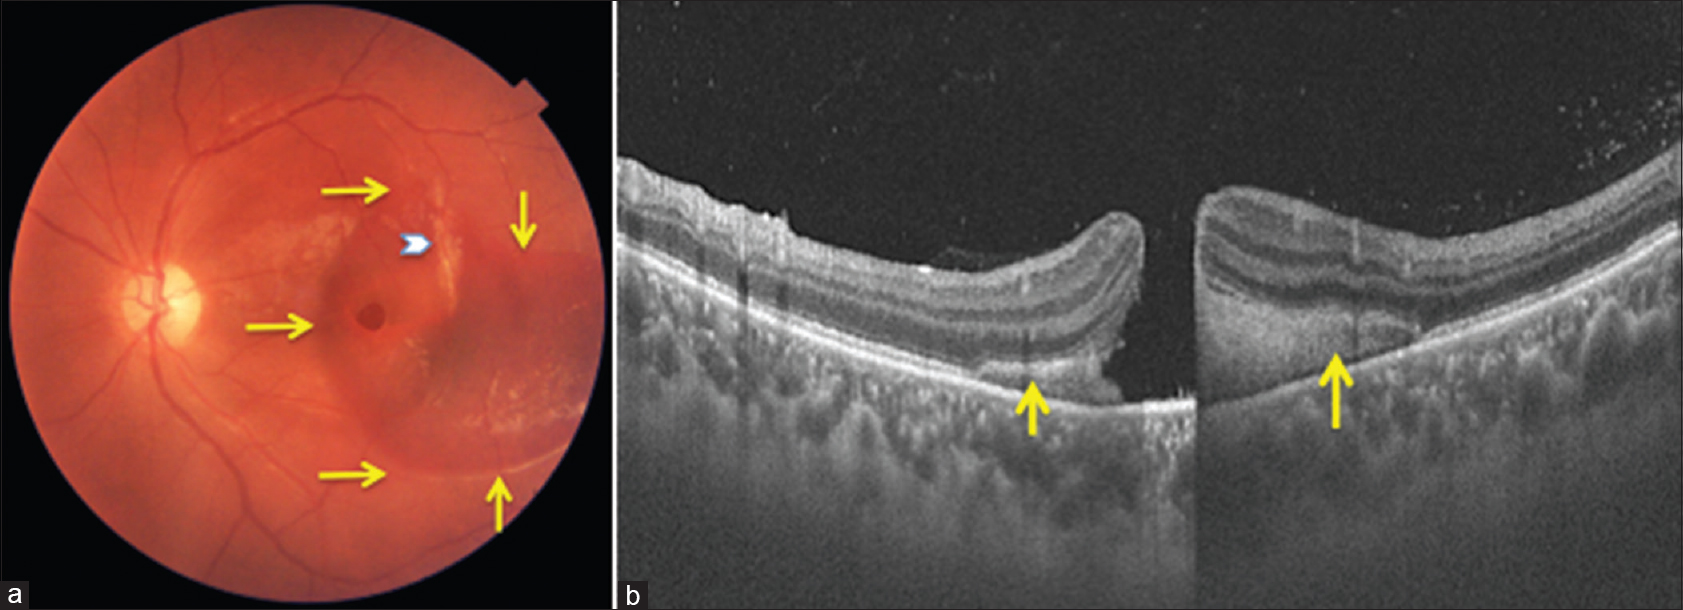 Figure 1 A Color Fundus Photograph At Presentation Shows Full Thickness Macular Hole Subretinal Hemorrhage Extending Across The Fovea Extent Marked By